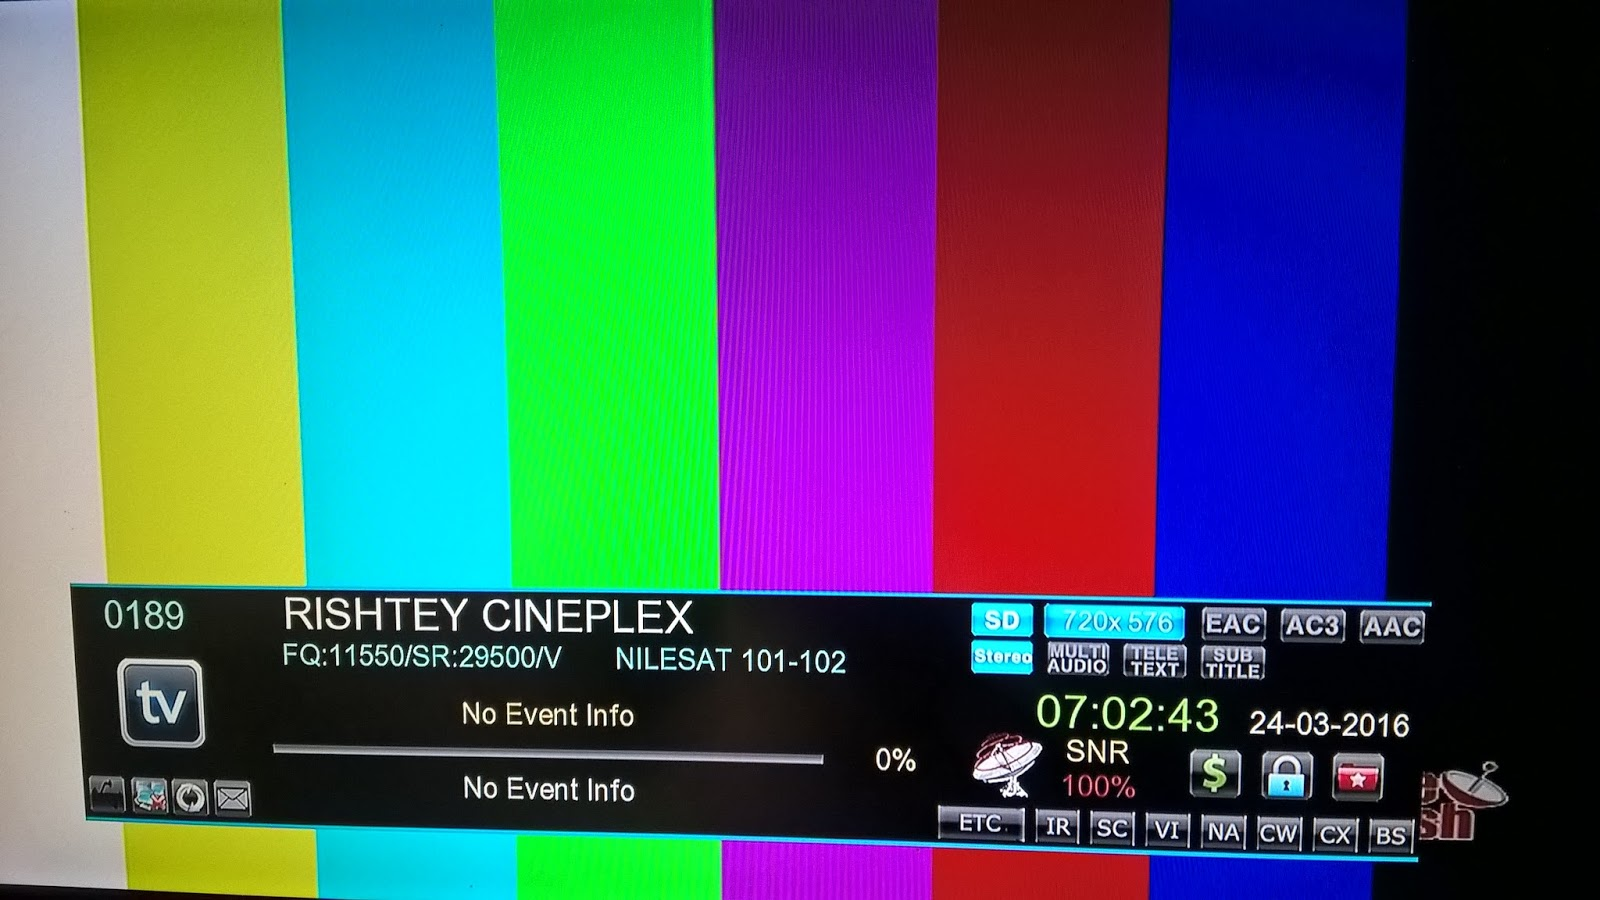 Rishtey Cineplex Hindi Movie channel removed from DD Free